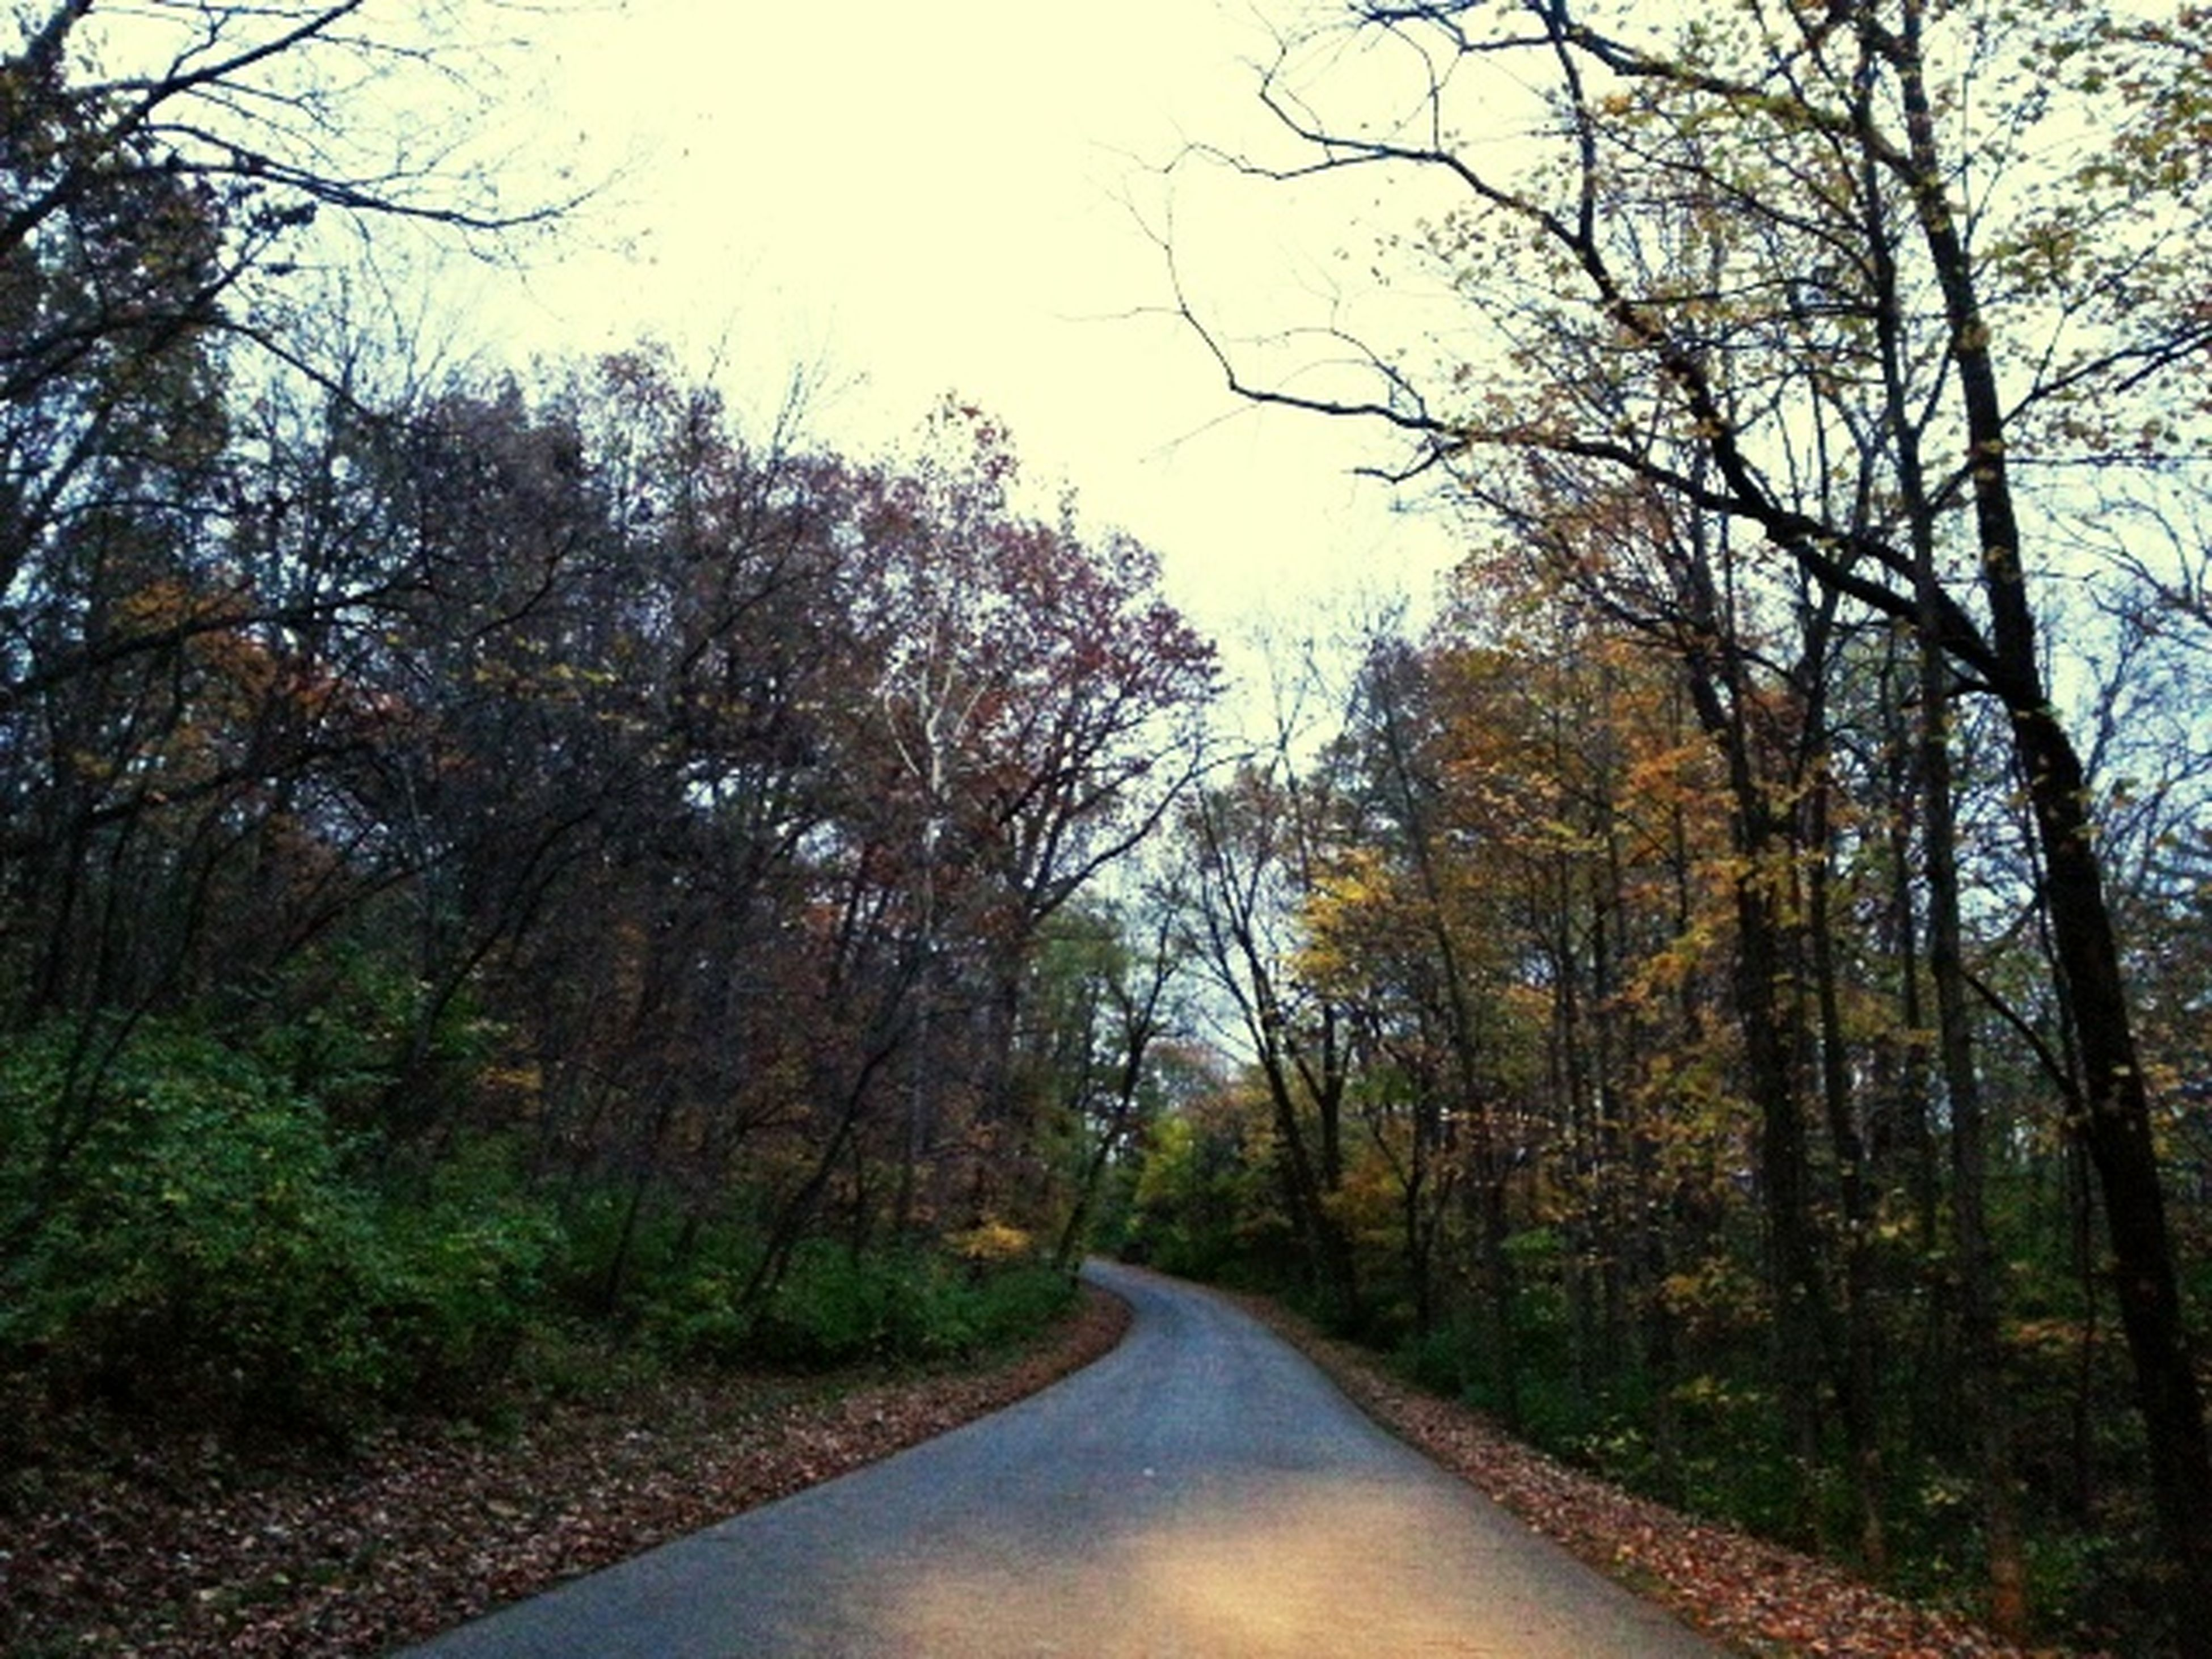 the way forward, tree, diminishing perspective, road, transportation, vanishing point, tranquility, tranquil scene, nature, forest, scenics, beauty in nature, bare tree, long, empty road, sky, country road, day, non-urban scene, clear sky